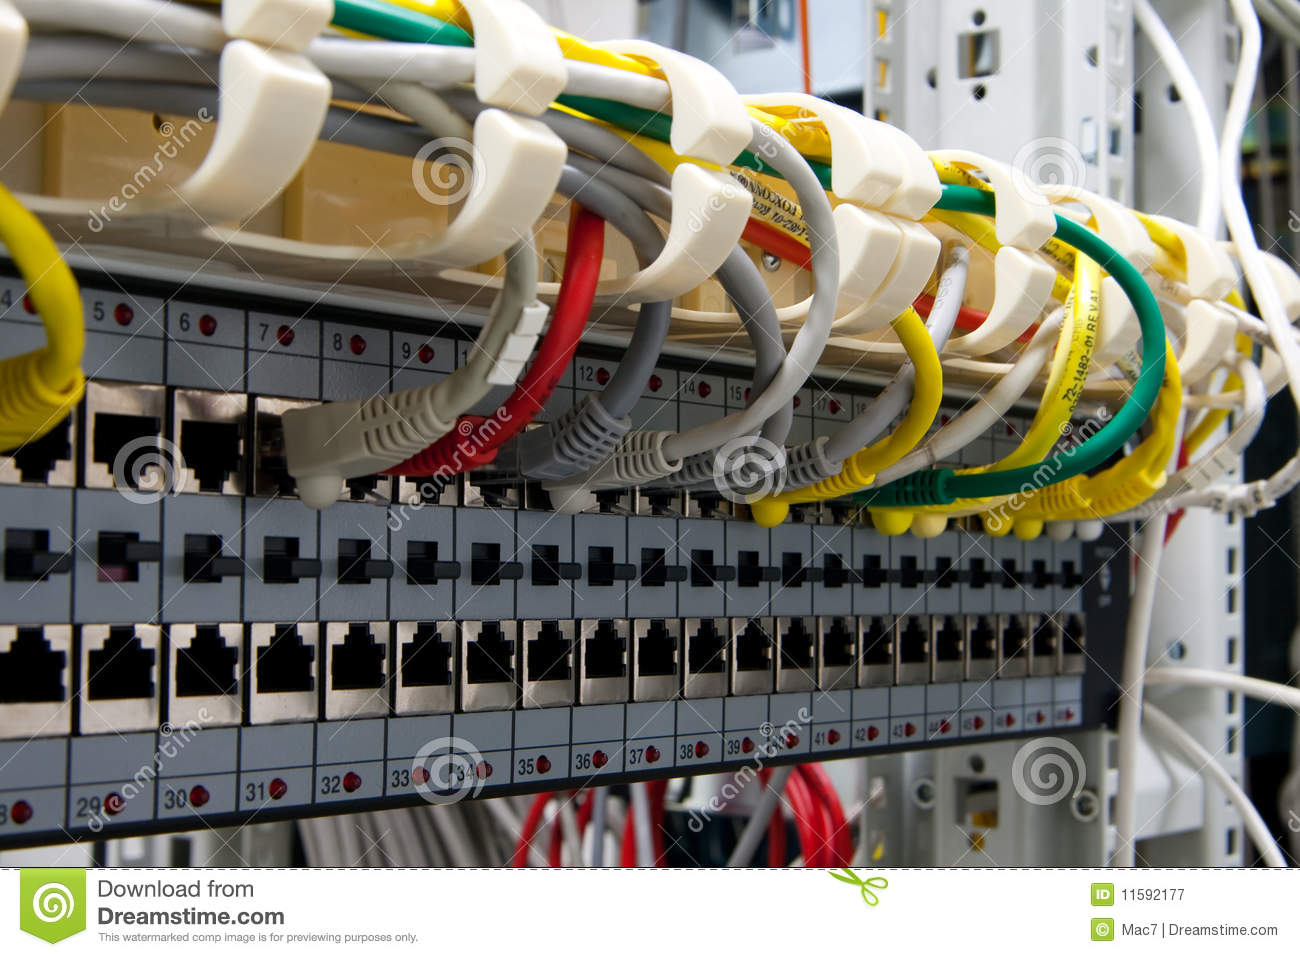 Cctv Wiring Connection Free Download Wiring Diagrams Pictures